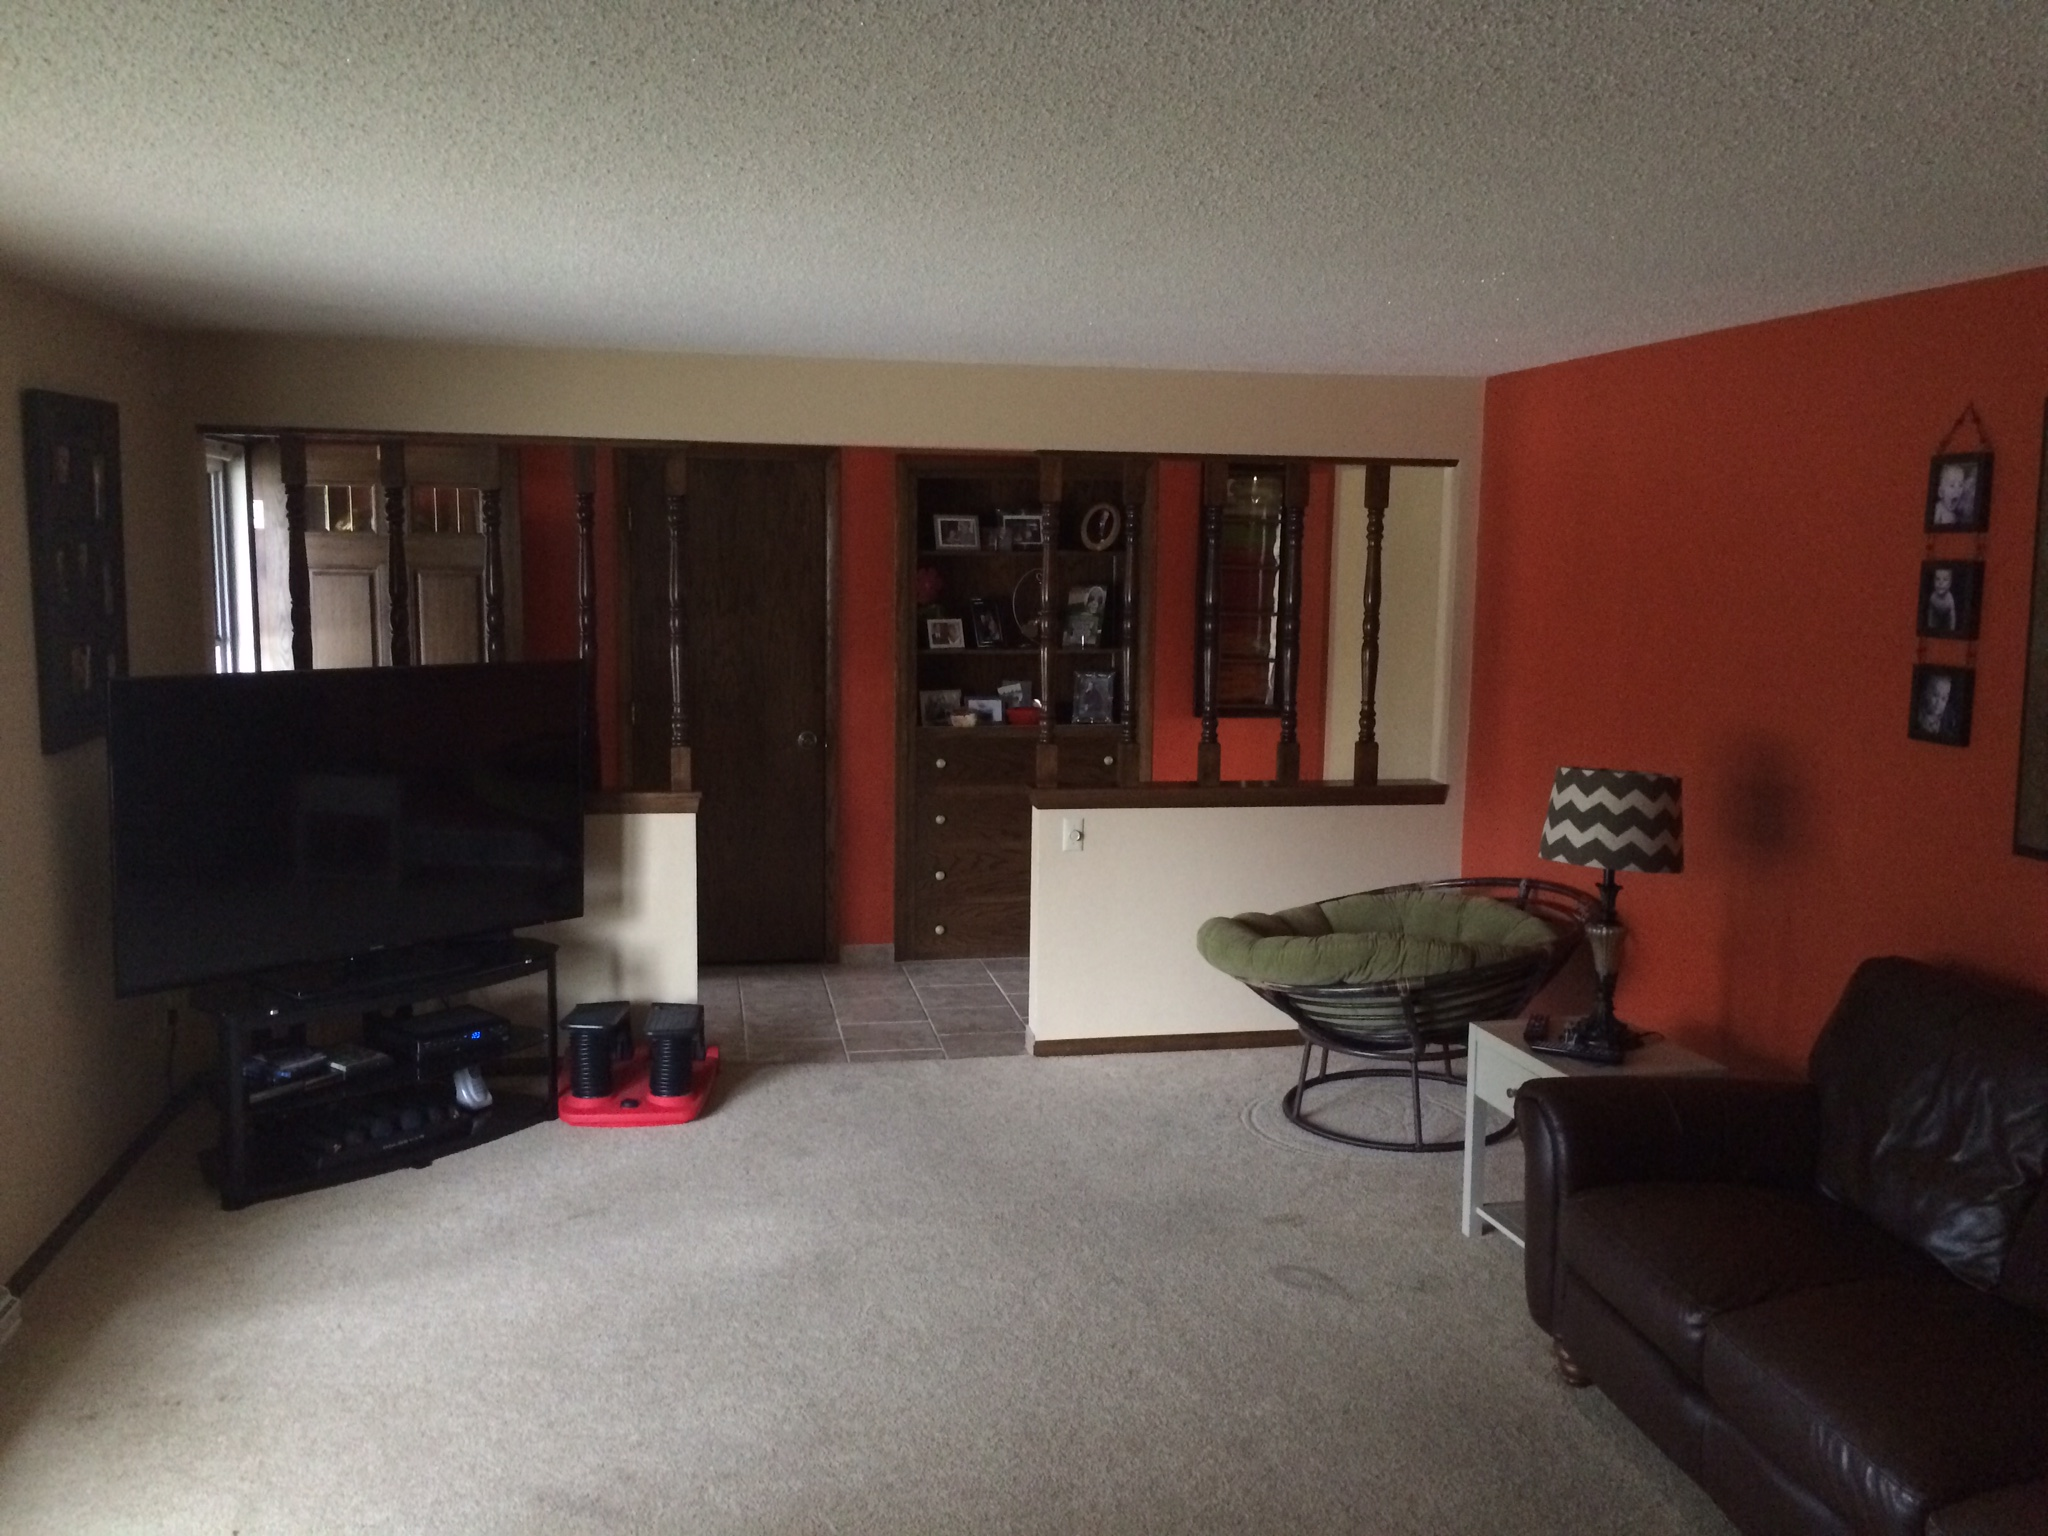 Interior Remodel Before 3